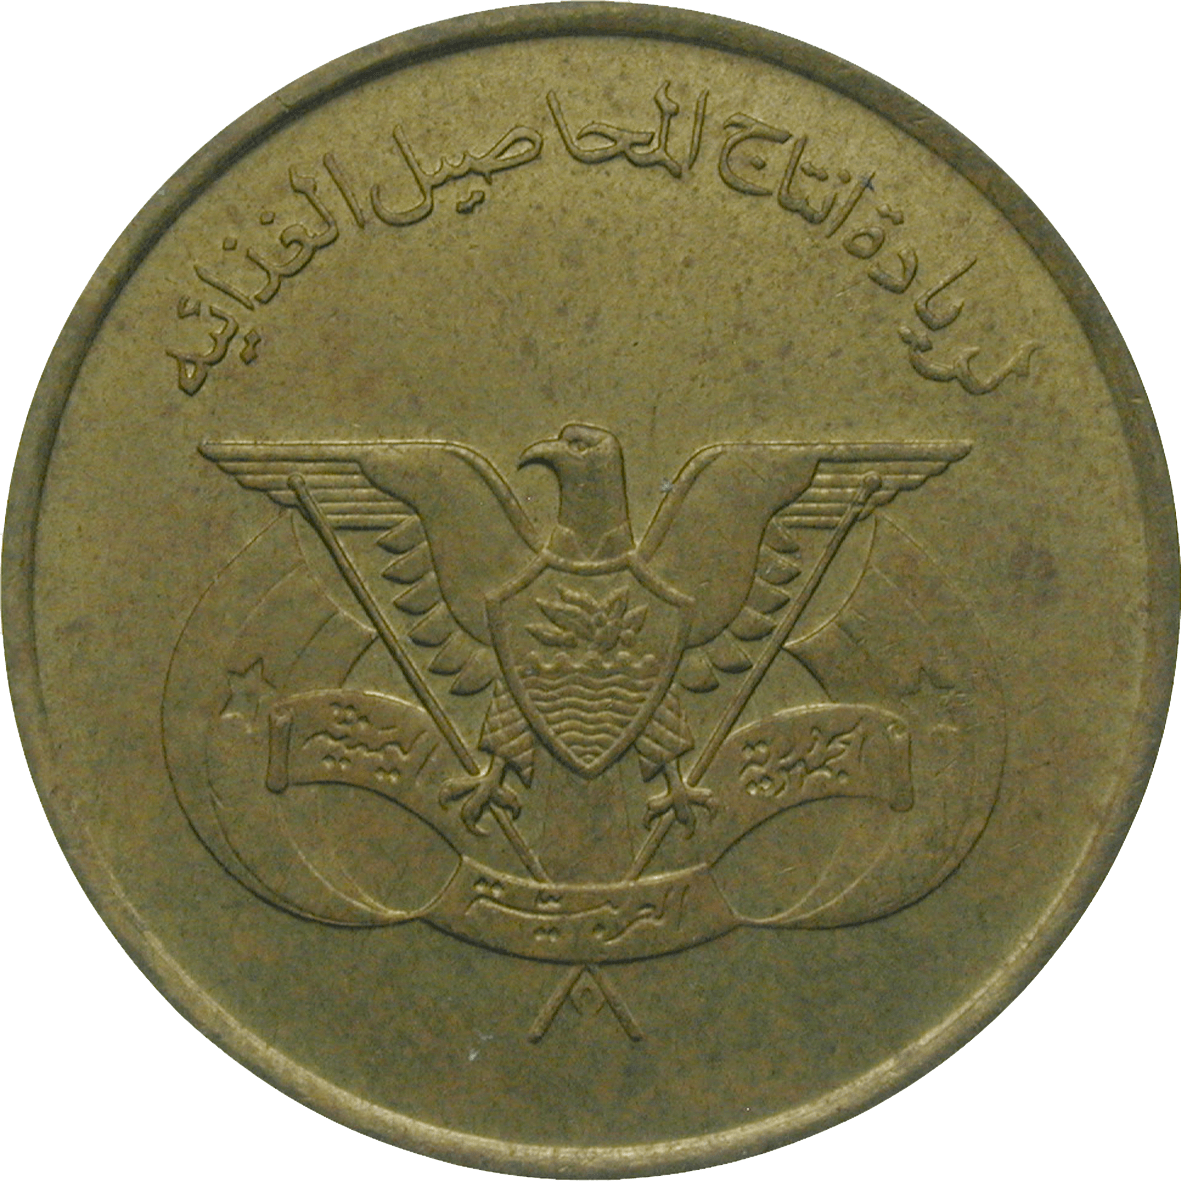 Yemen Arab Republic (North Yemen), 5 Fils 1394 AH (obverse)